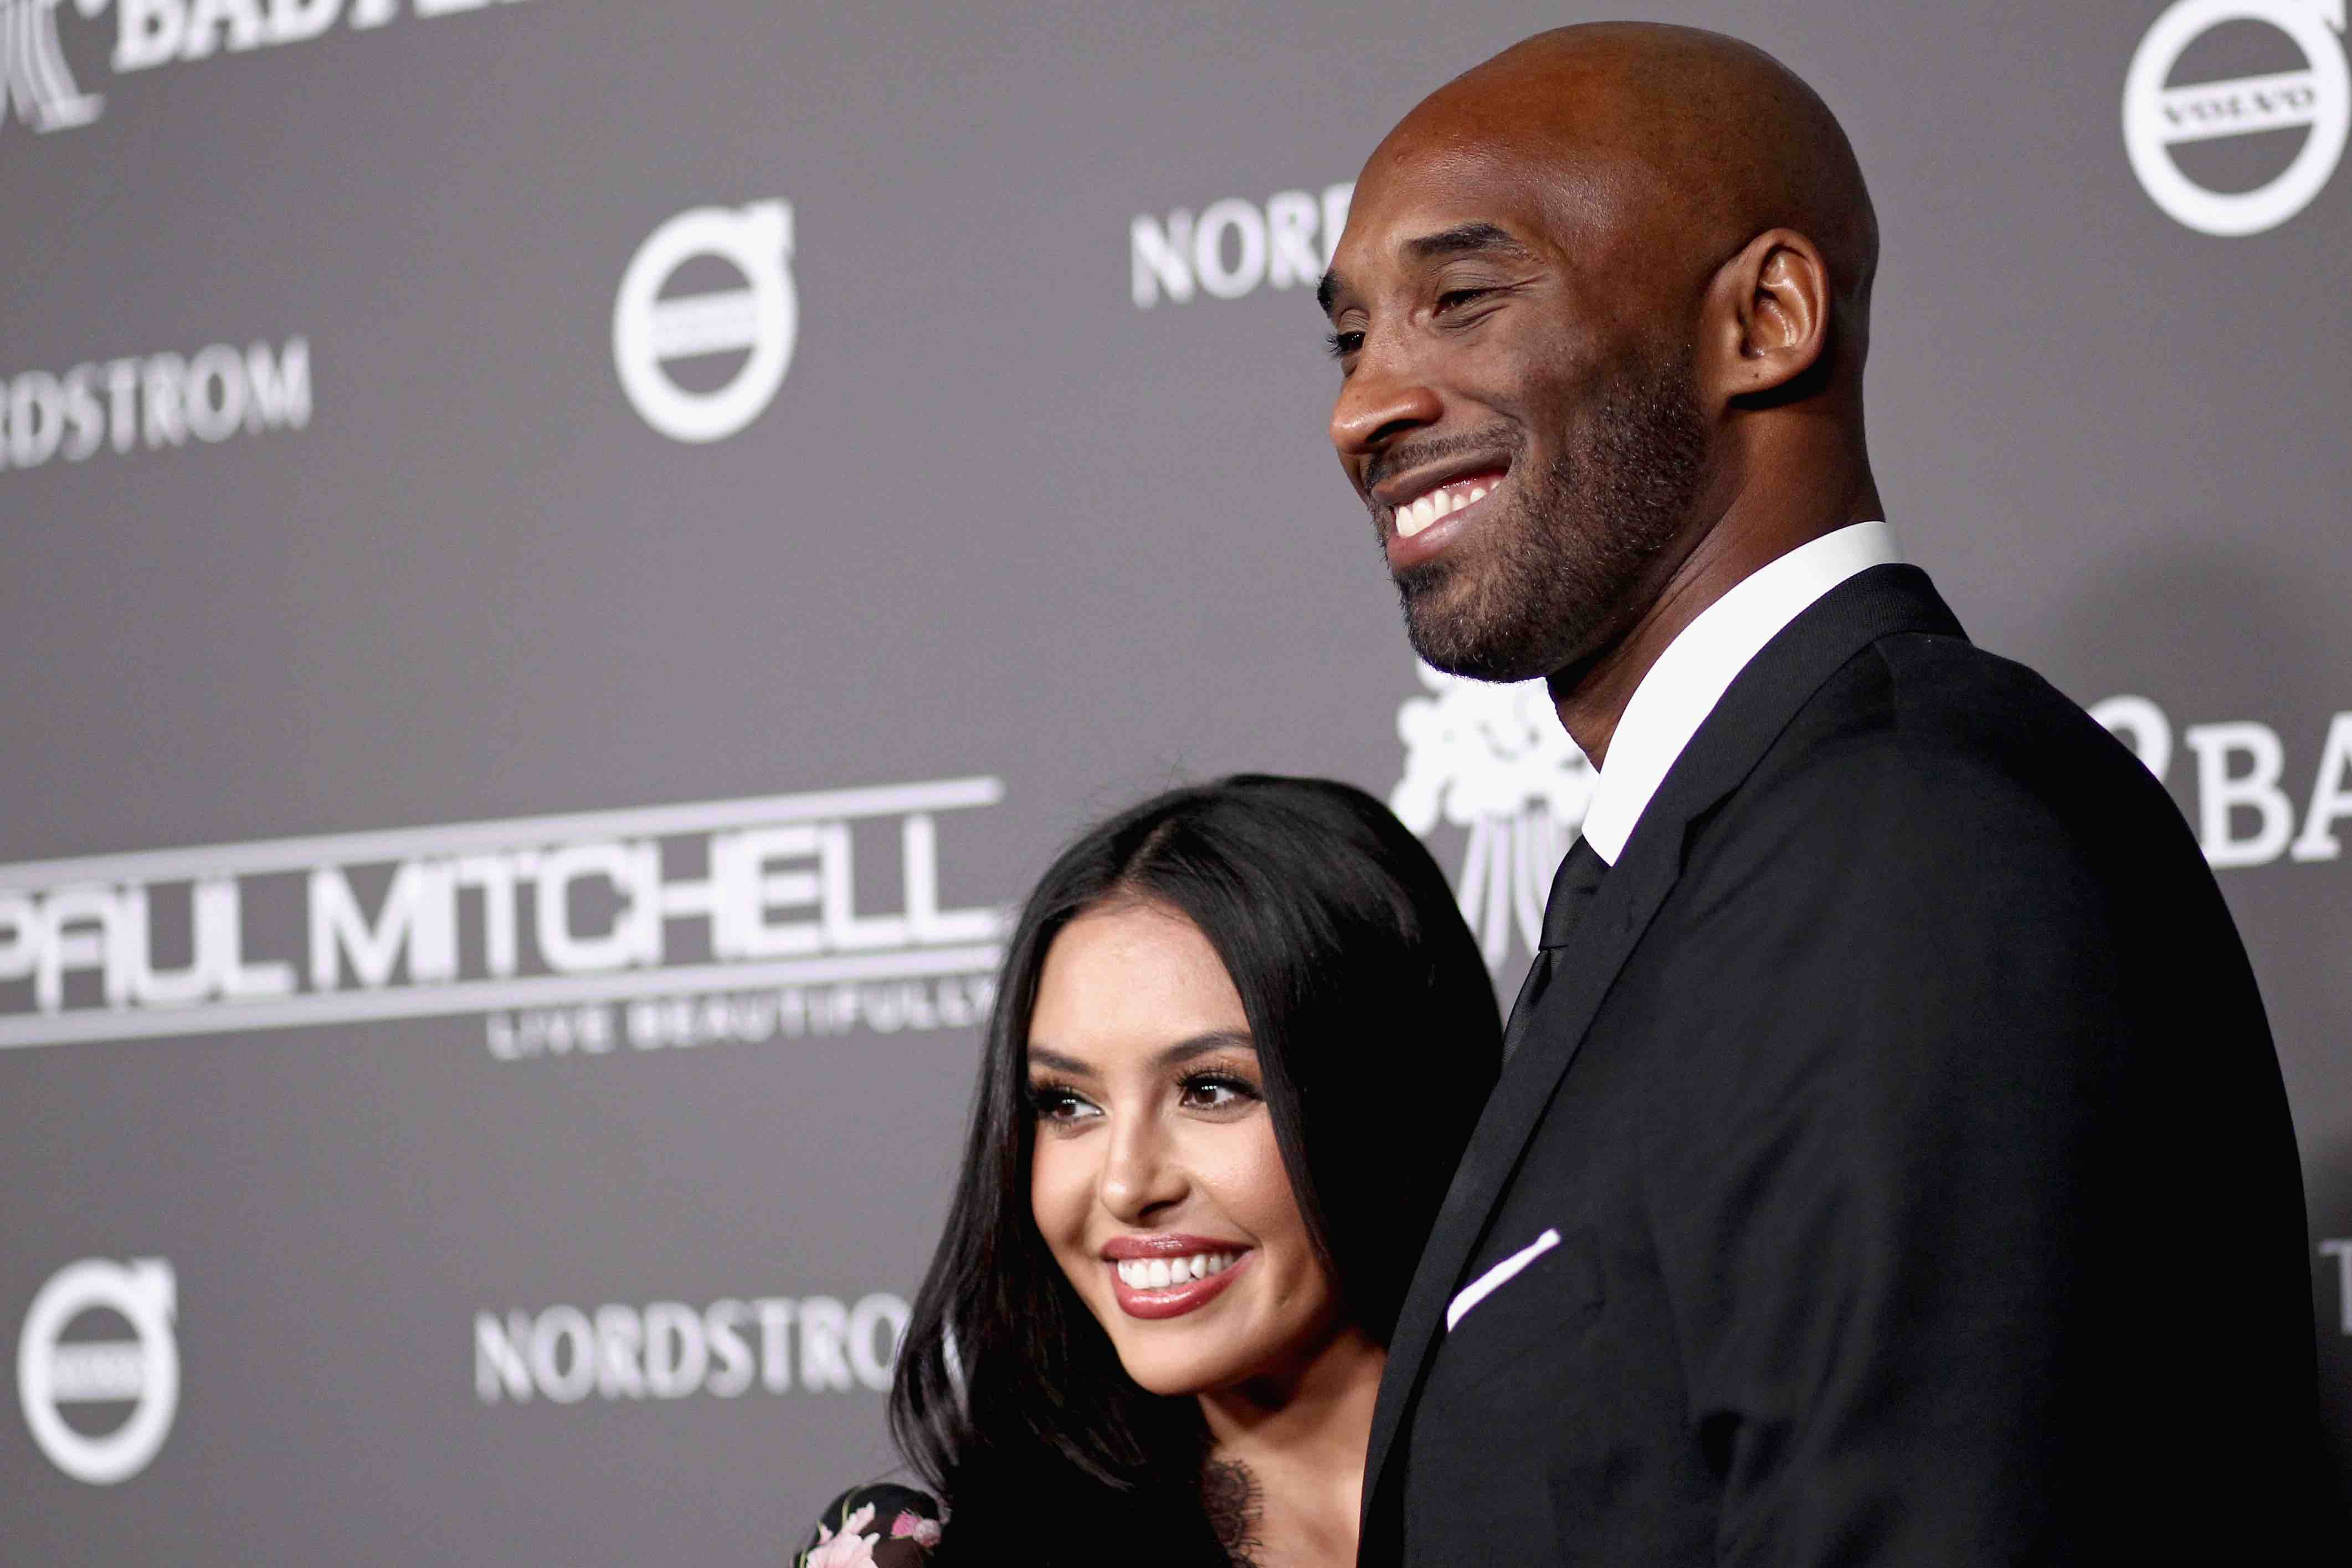 Vanessa Bryant Posts Heartfelt Message for Kobe and Gianna on Instagram